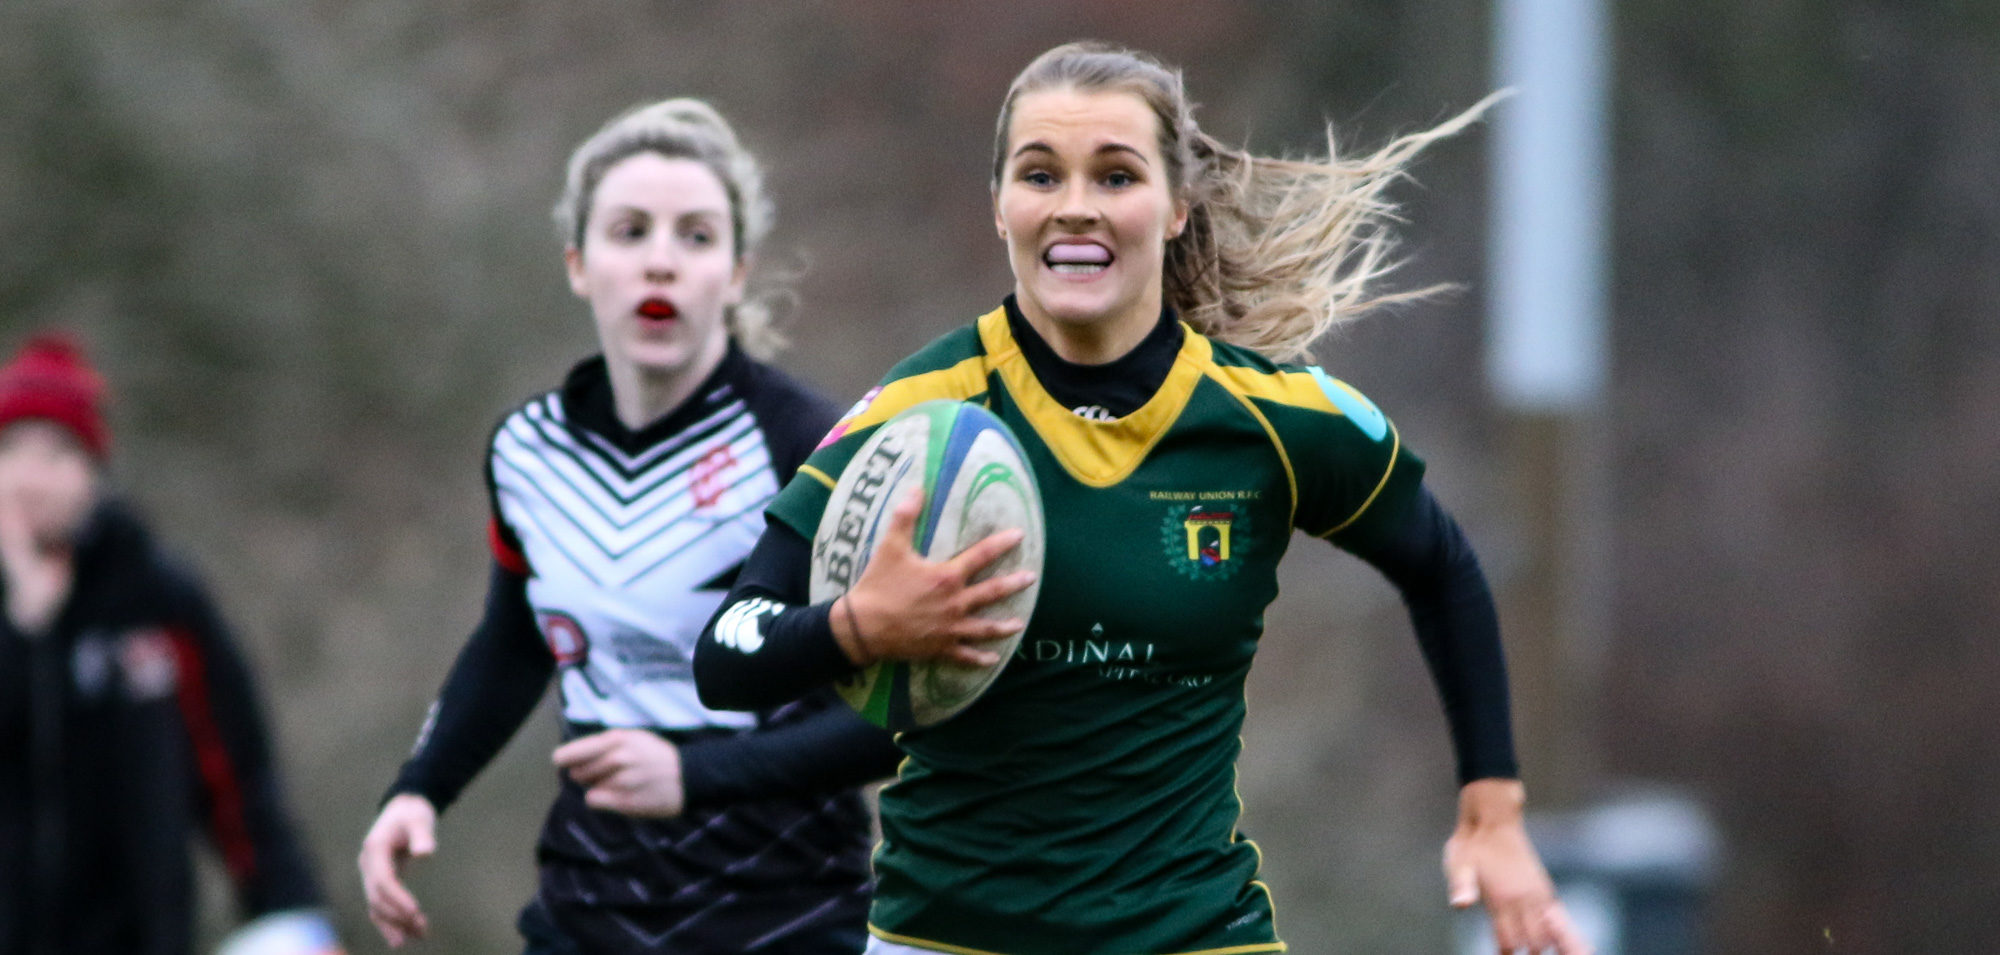 Is the Supporters Club Membership a good way forward for women's clubs?